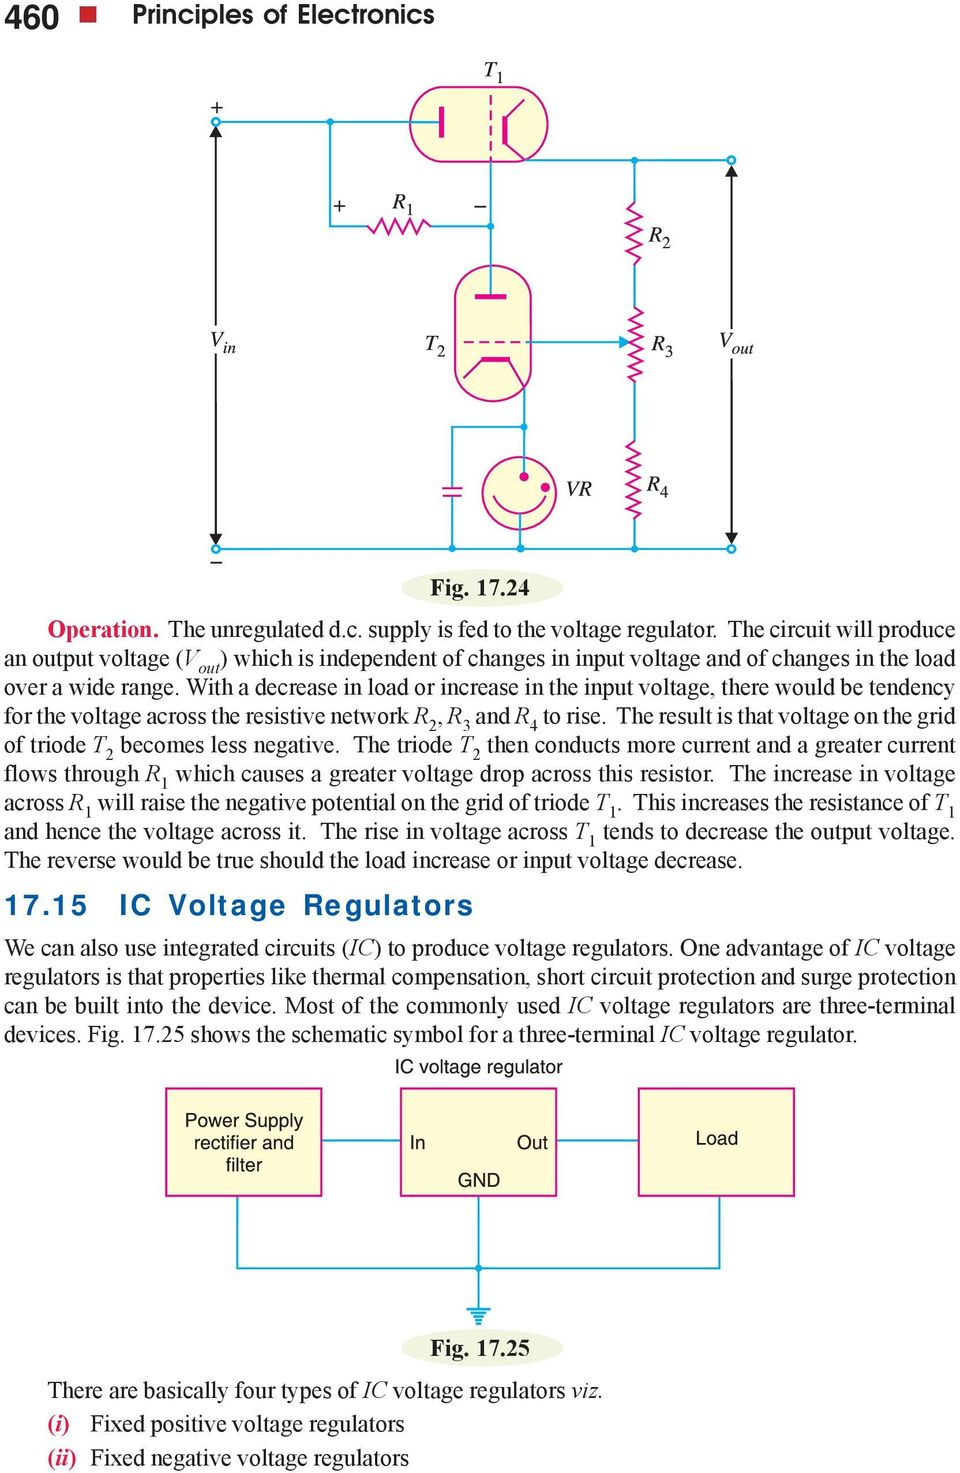 Regulated Dc Power Supply Pdf Circuits And Solution 5 Volt Regulator Circuit Using 7805 Ic With A Decrease In Load Or Increase The Input Voltage There Would Be Tendency